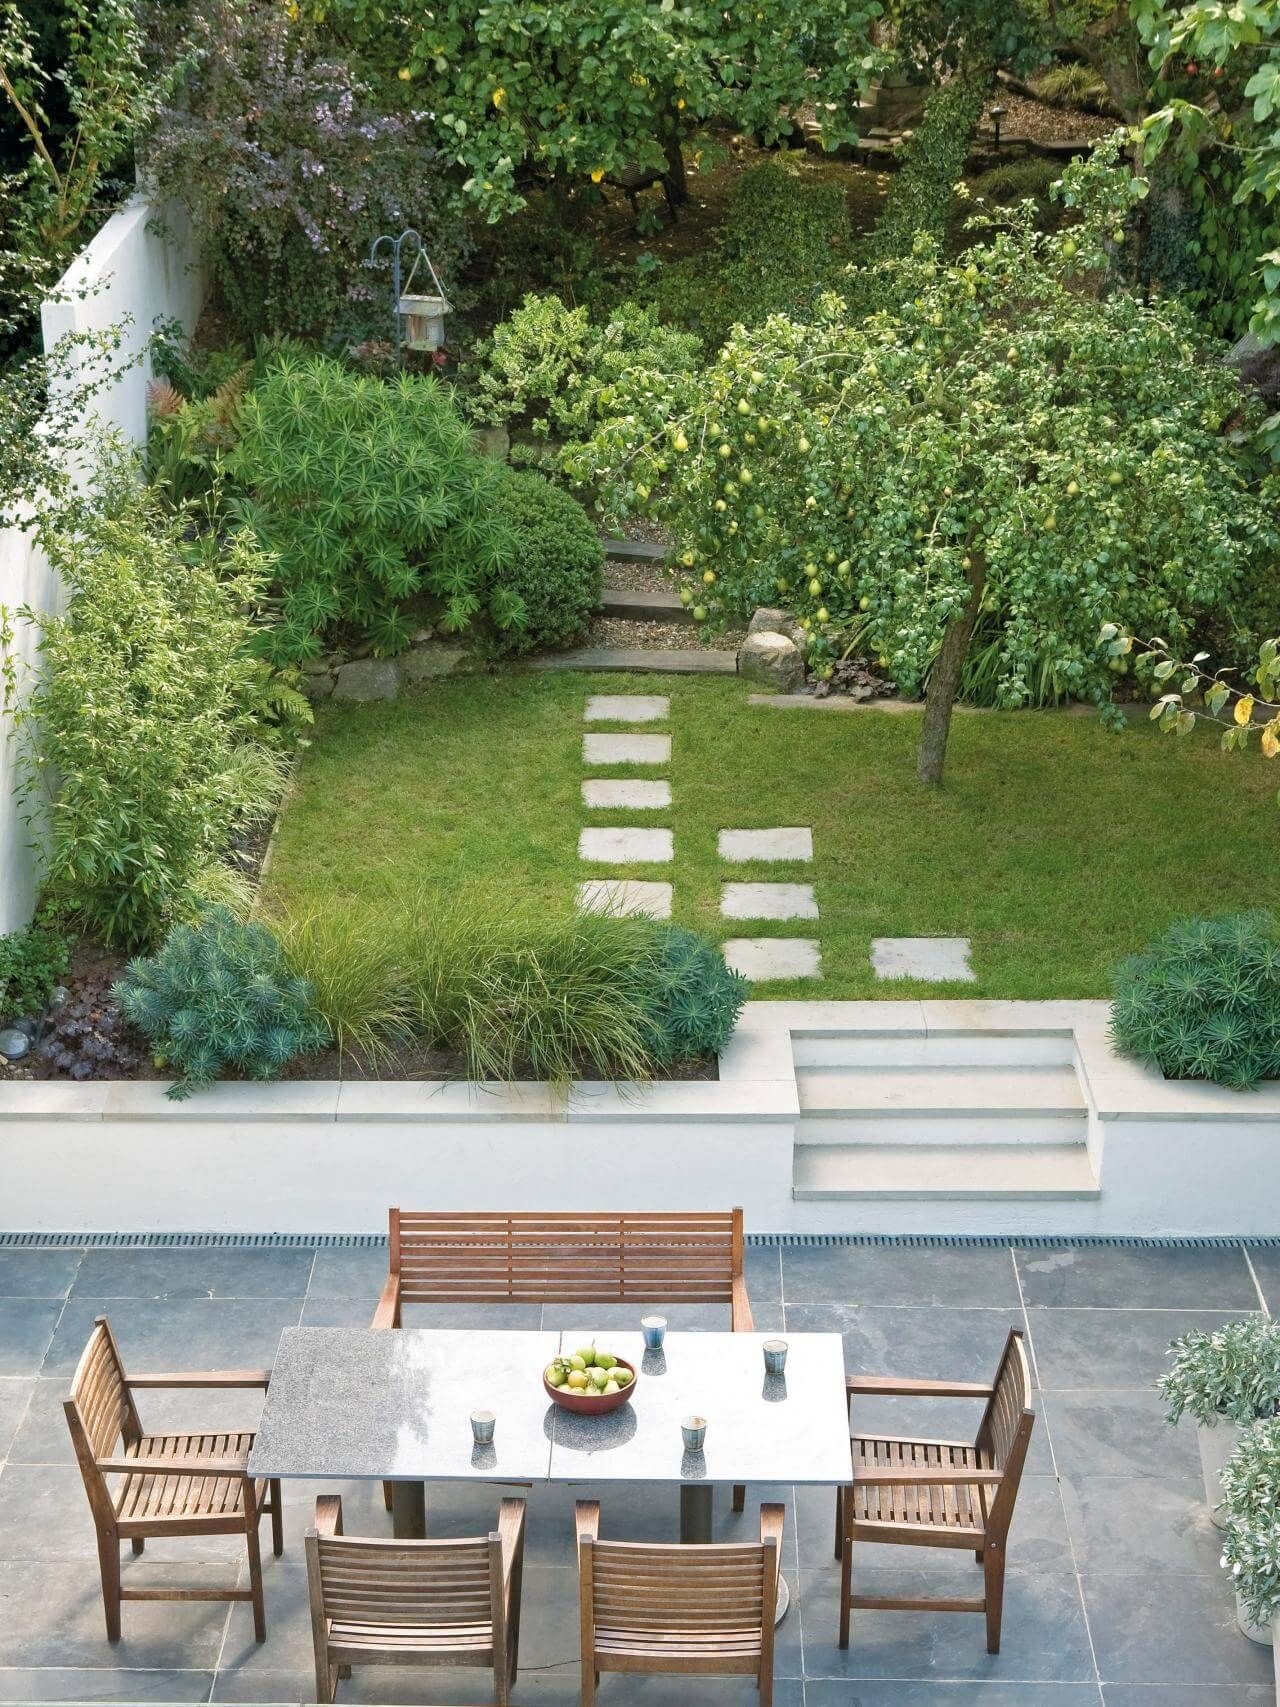 41 Backyard Design Ideas For Small Yards Page 21 Of 41